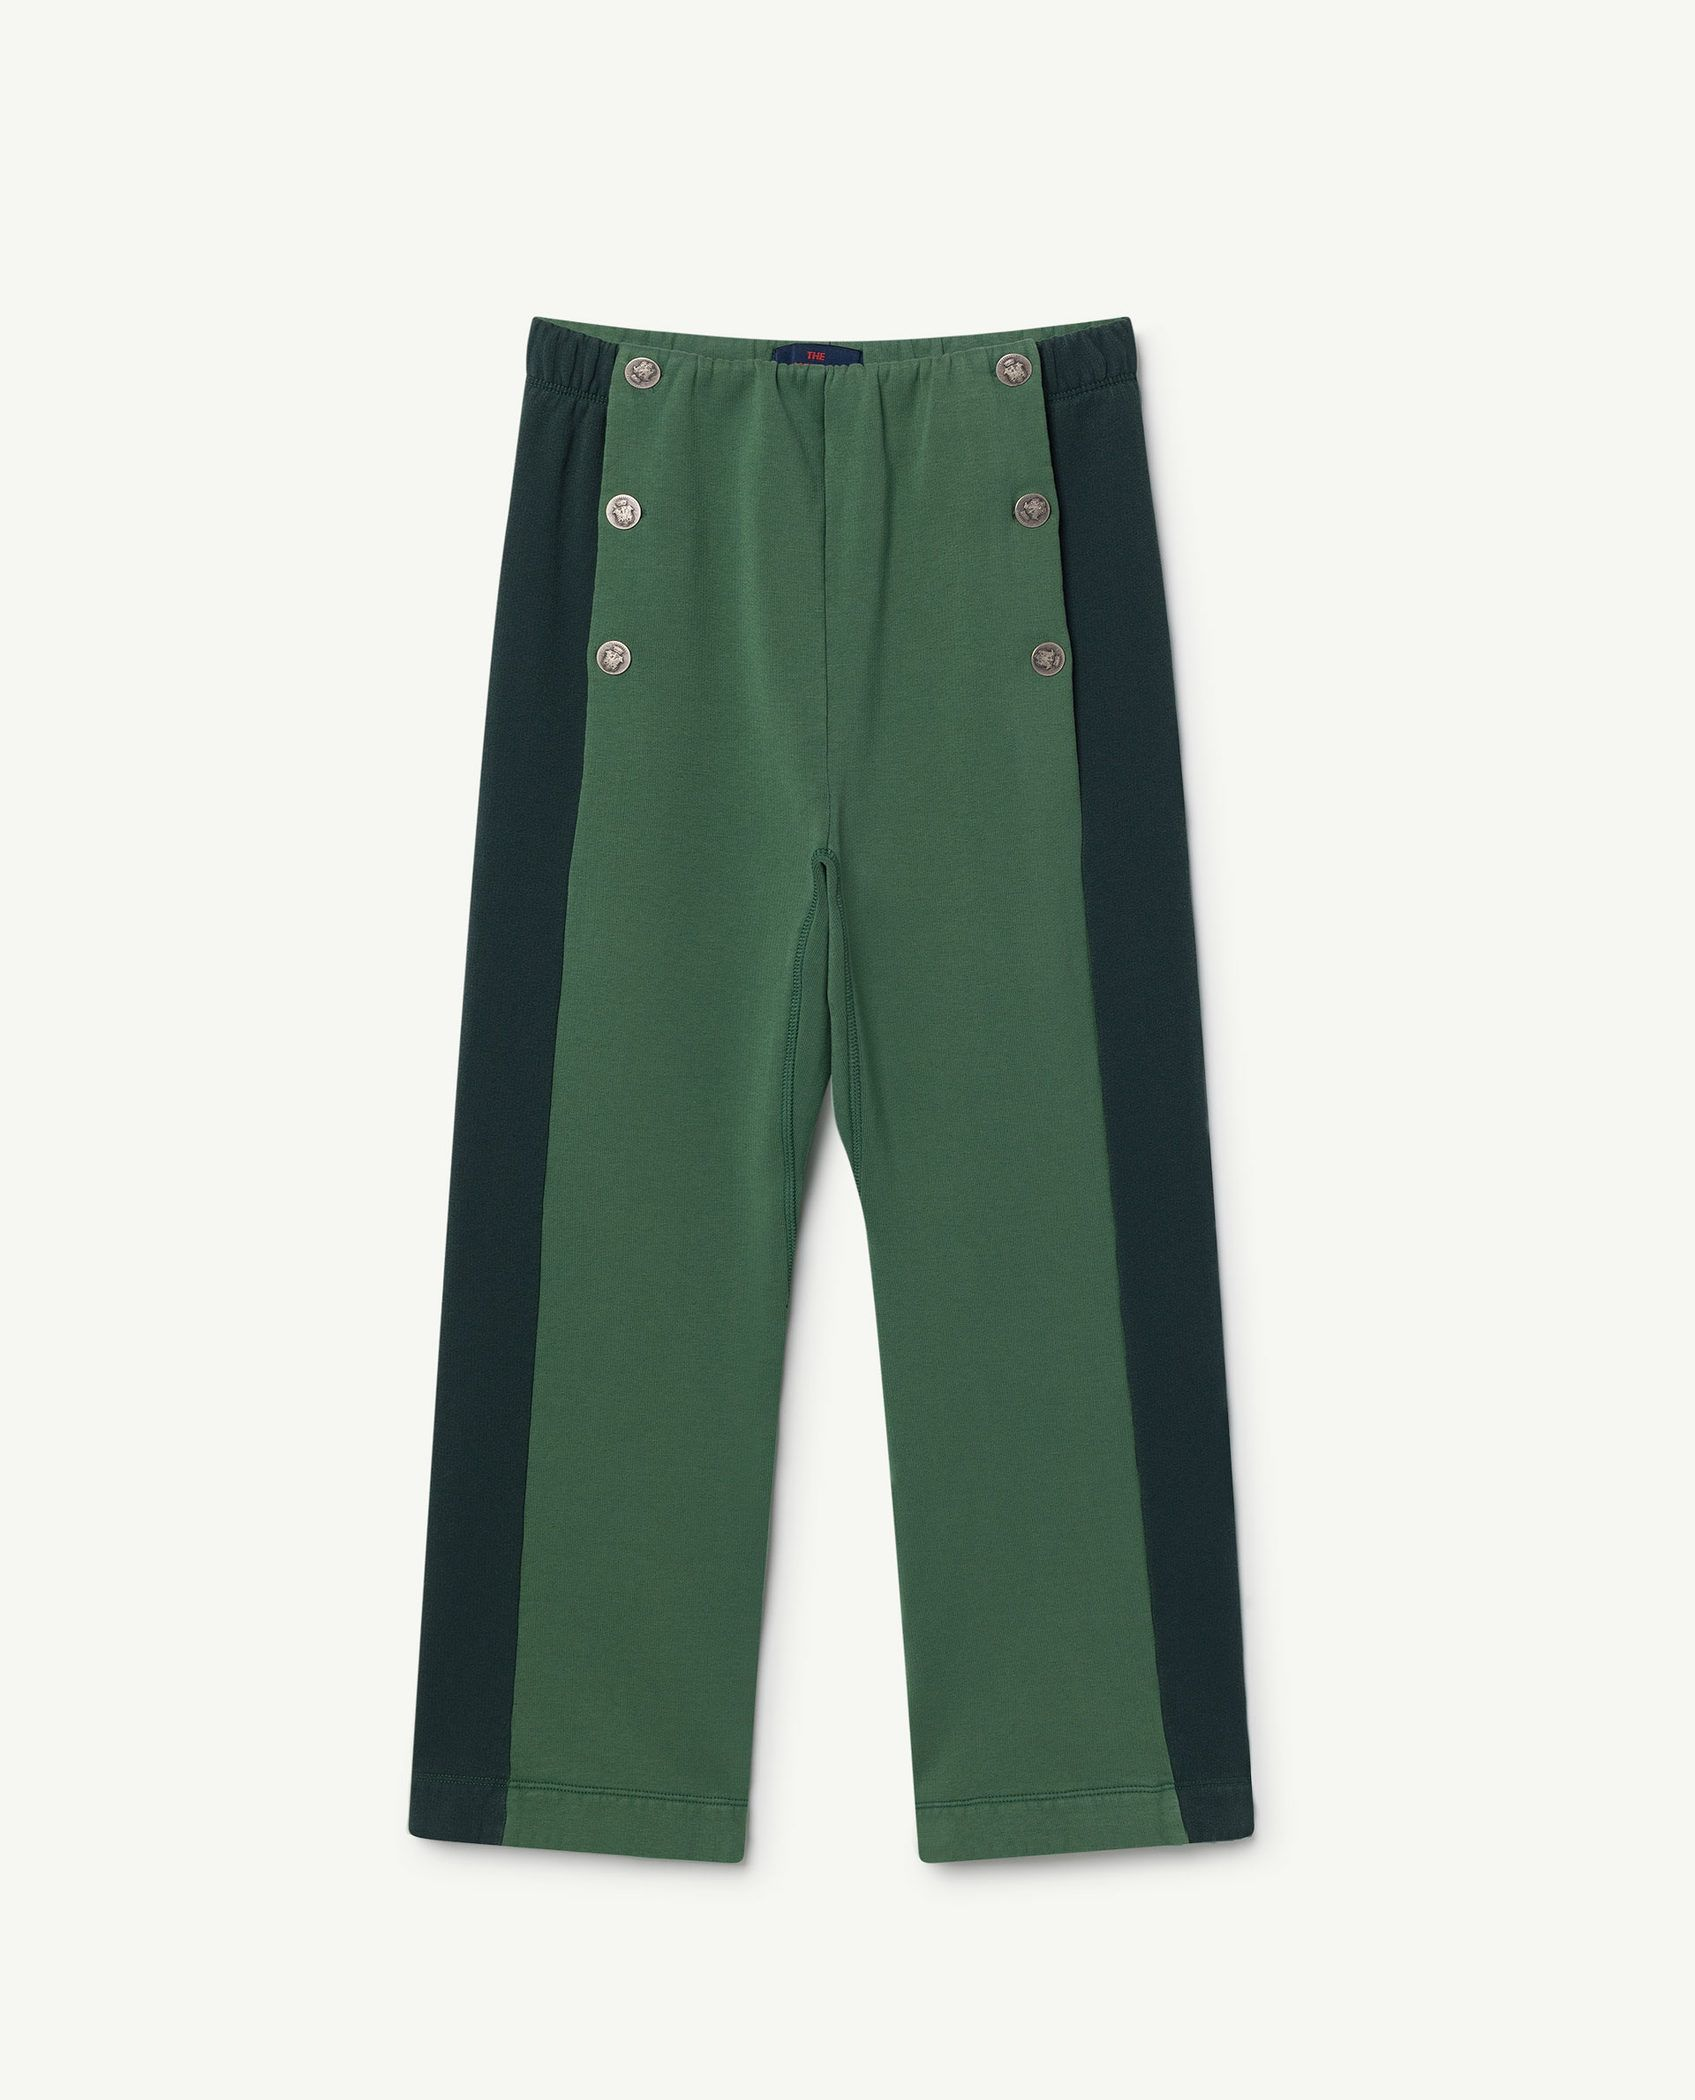 Green Magpie Pants img-1